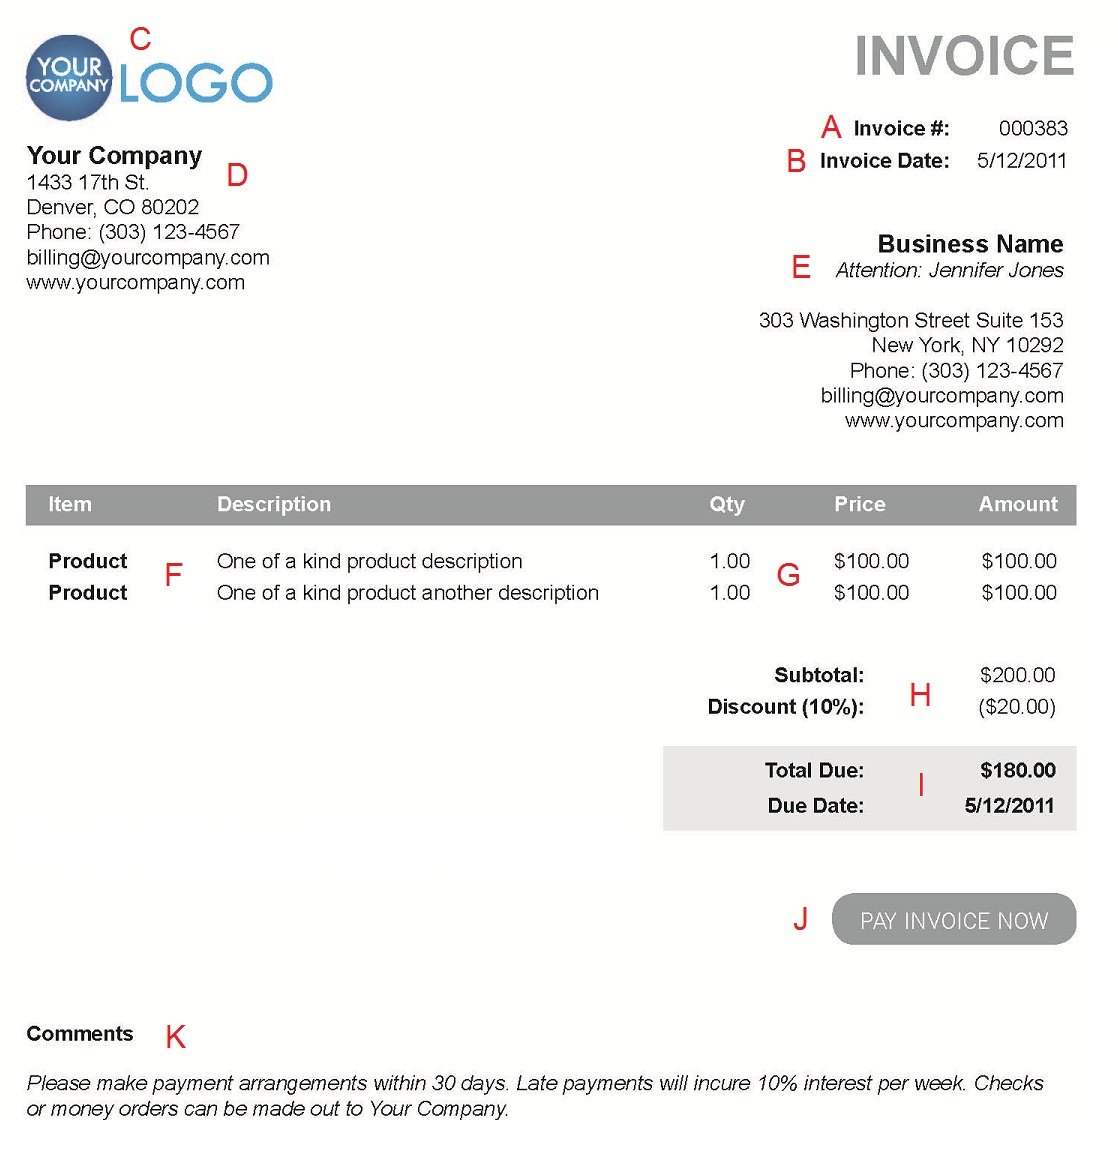 Offtheshelfus  Sweet The  Different Sections Of An Electronic Payment Invoice With Exciting A  With Adorable Delta Airline Receipt Also Delta Ticket Receipt In Addition Constructive Receipt Definition And Visa Receipt Number As Well As Receipt Pads Additionally Printable Cash Receipts From Paysimplecom With Offtheshelfus  Exciting The  Different Sections Of An Electronic Payment Invoice With Adorable A  And Sweet Delta Airline Receipt Also Delta Ticket Receipt In Addition Constructive Receipt Definition From Paysimplecom